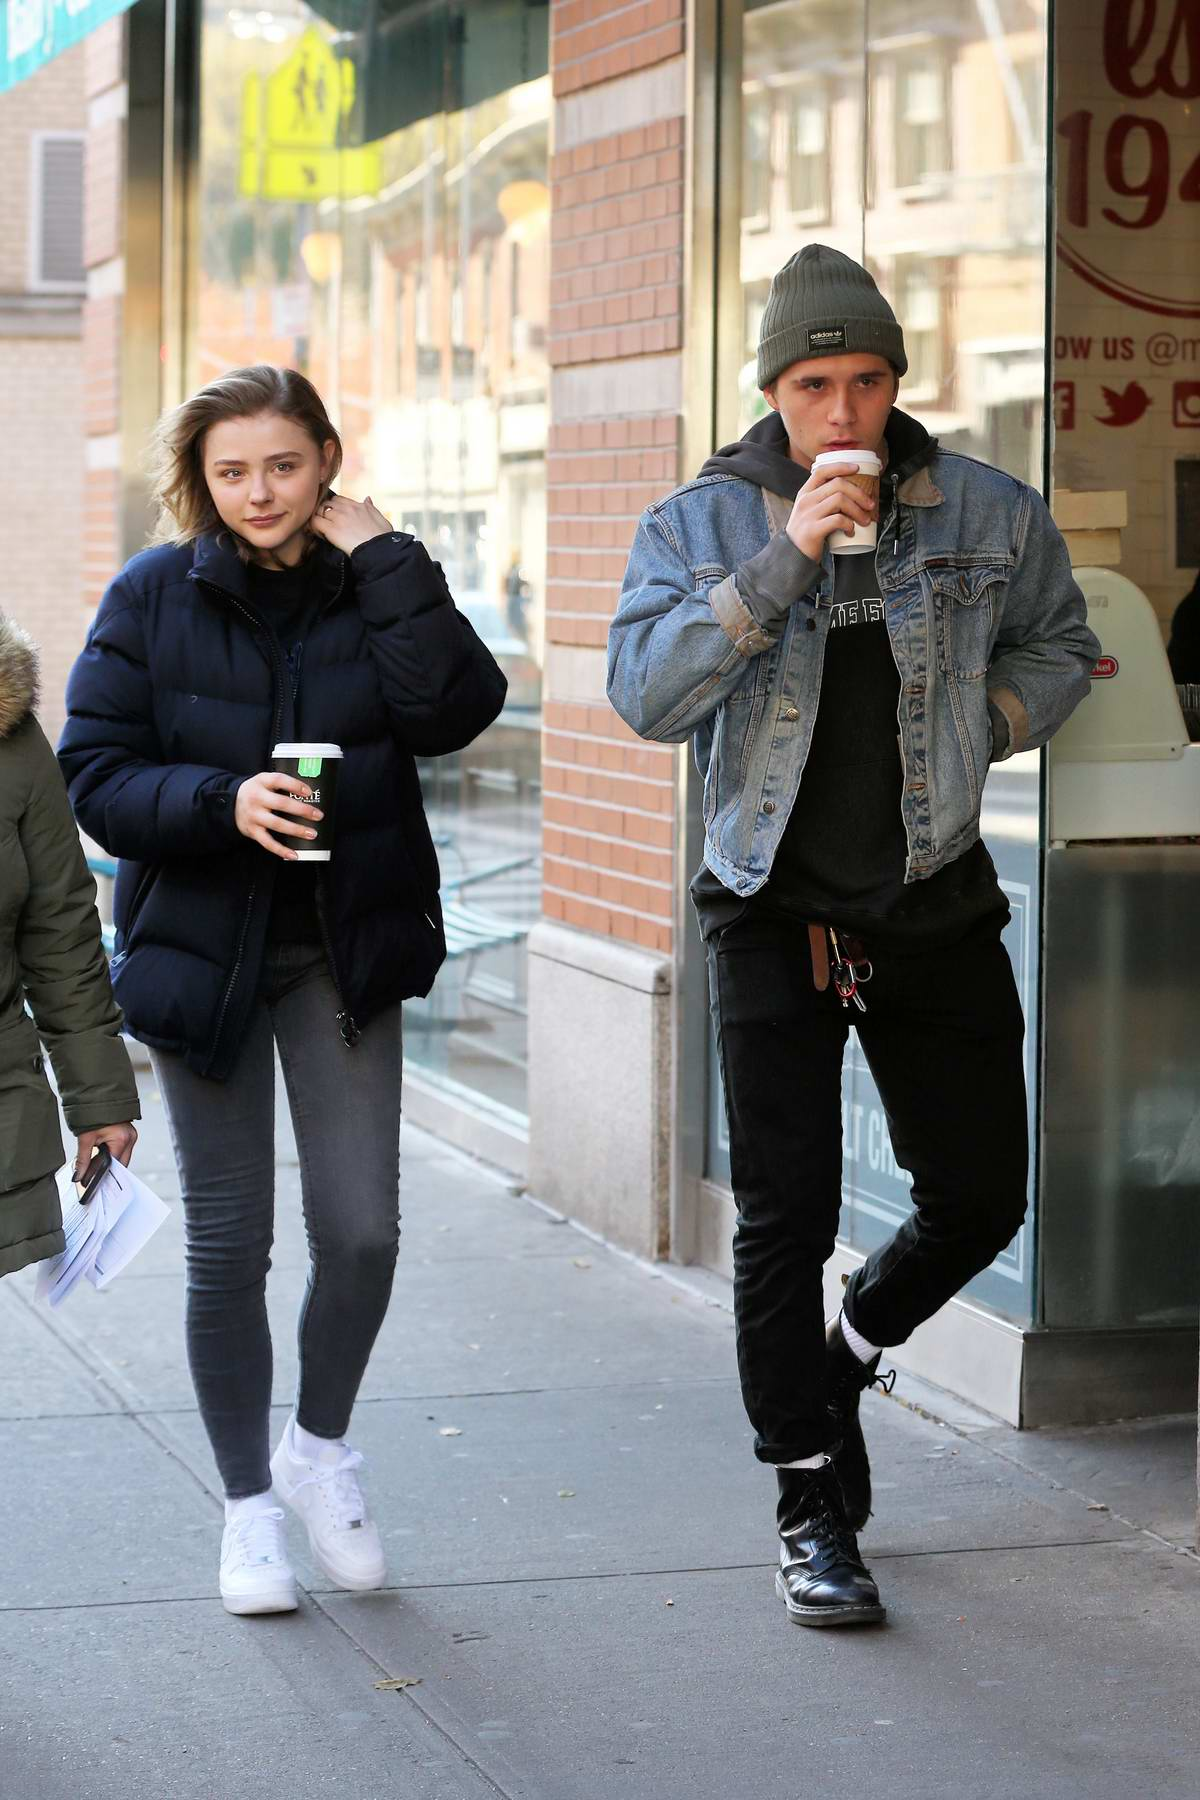 Chloe Grace Moretz grabs coffee with her boyfriend Brooklyn Beckham between takes filming 'The Widow' in New York City